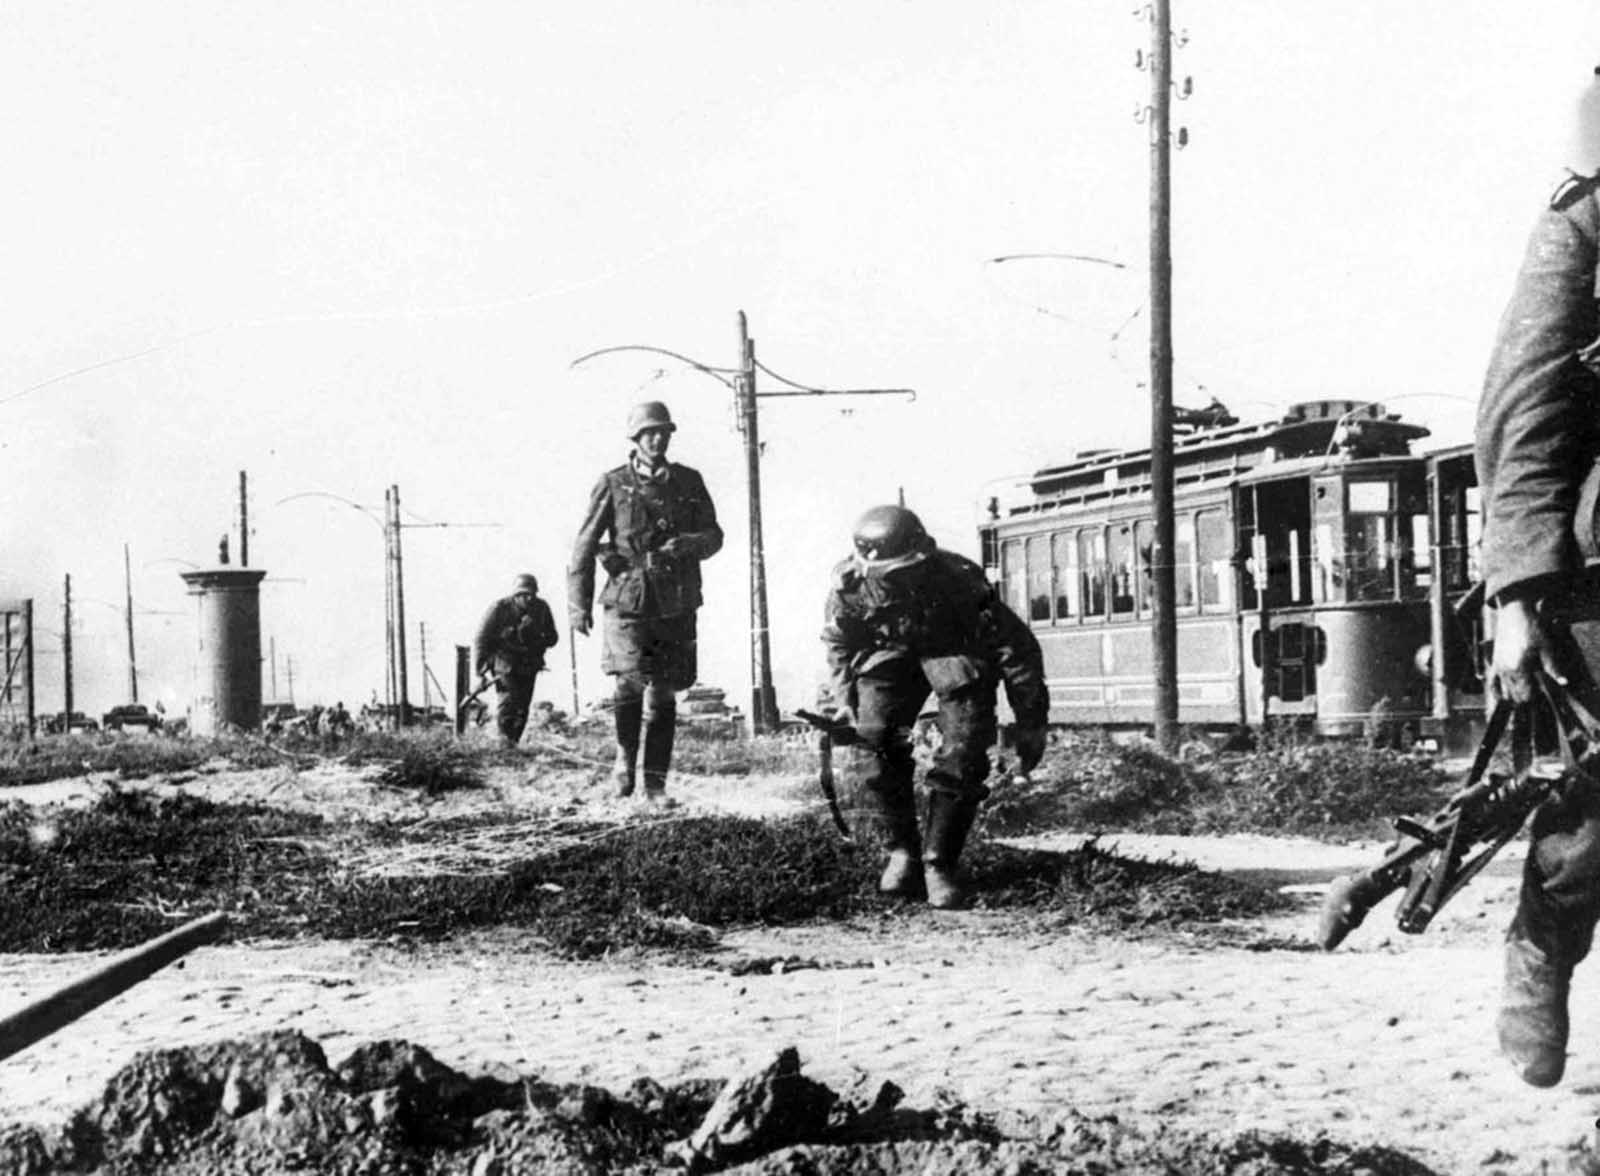 German infantry cautiously advance on the outskirts of Warsaw, Poland on September 16, 1939.